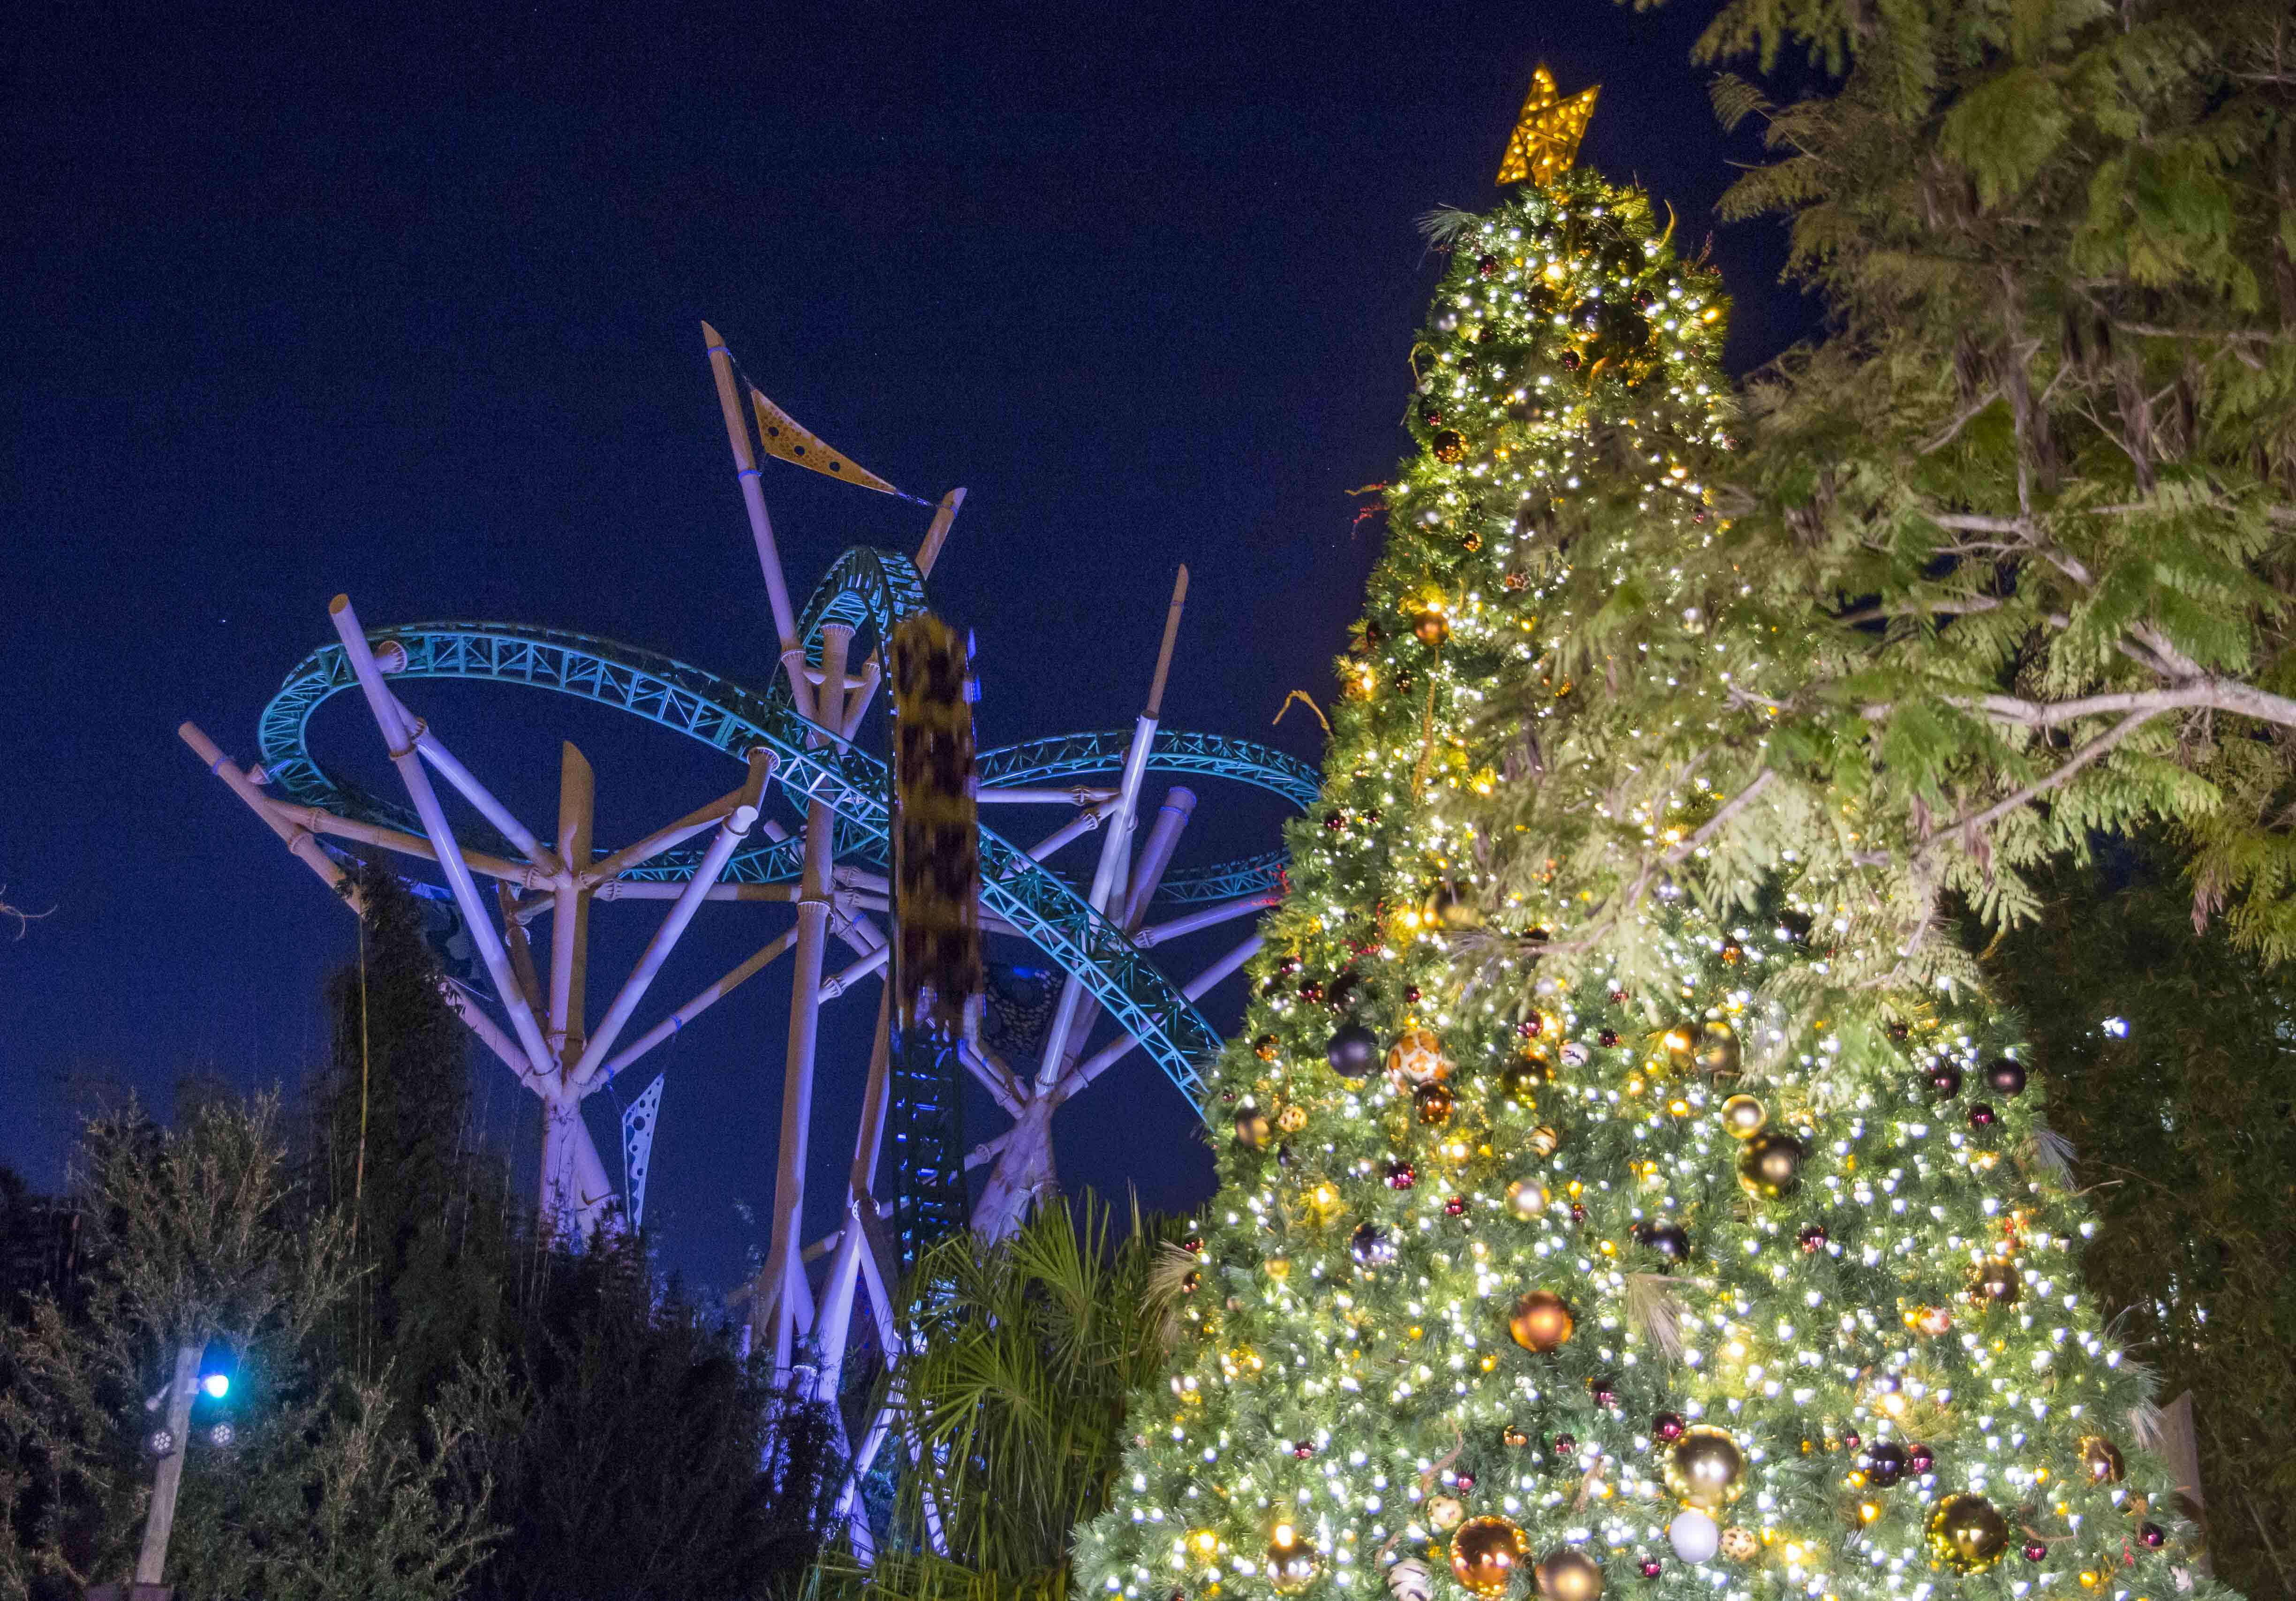 Lowry Park Zoo Christmas.This Week S Top Holiday Events Parades Christmas Lights